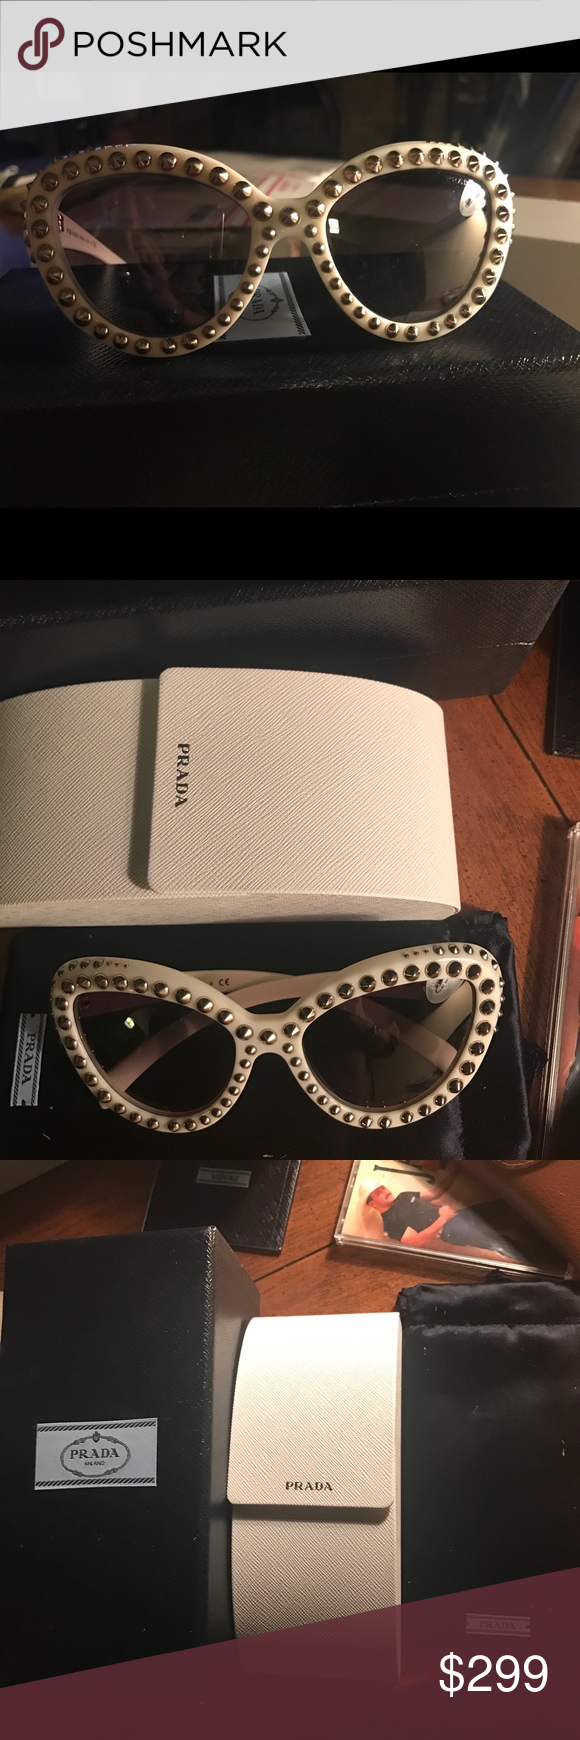 Authentic Prada Beige Studded Glasses NEW w/box These are hot! Great shape cat-eye like Authentic Prada sunglasses. Embellished with silver color studs. Comes with booklet, hard case, soft case and box! New - l forgot l owned them. Prada Accessories Sunglasses